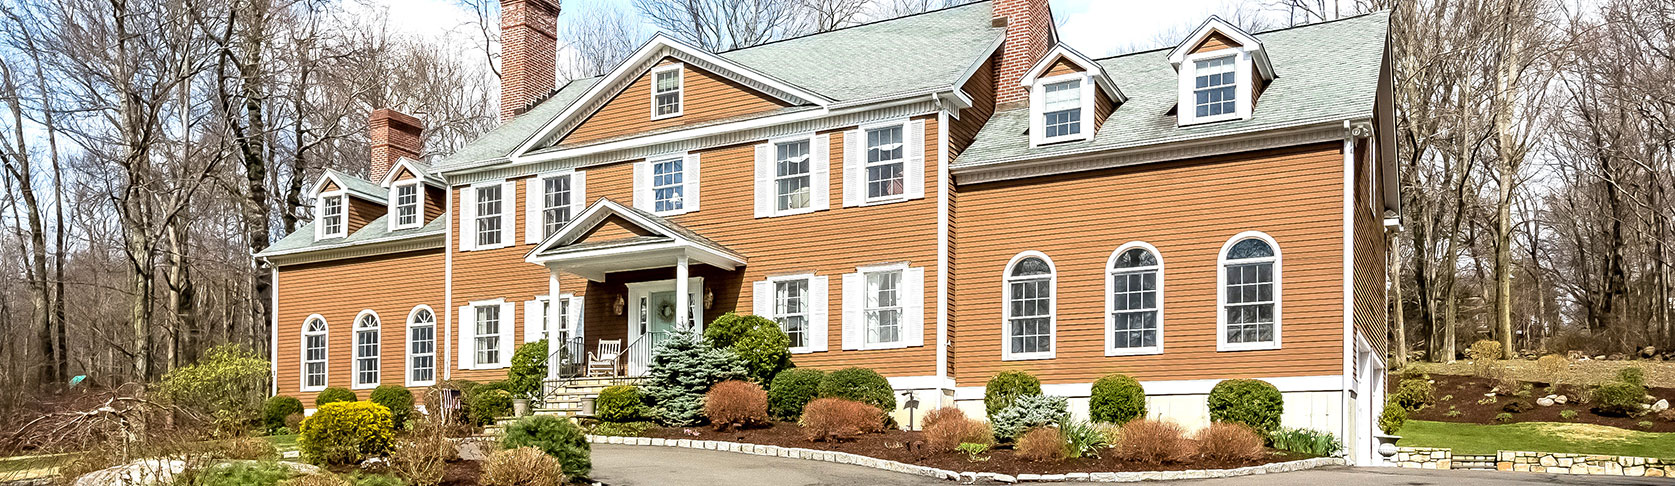 141 Putting Green Road, Trumbull (Hillandale), CT